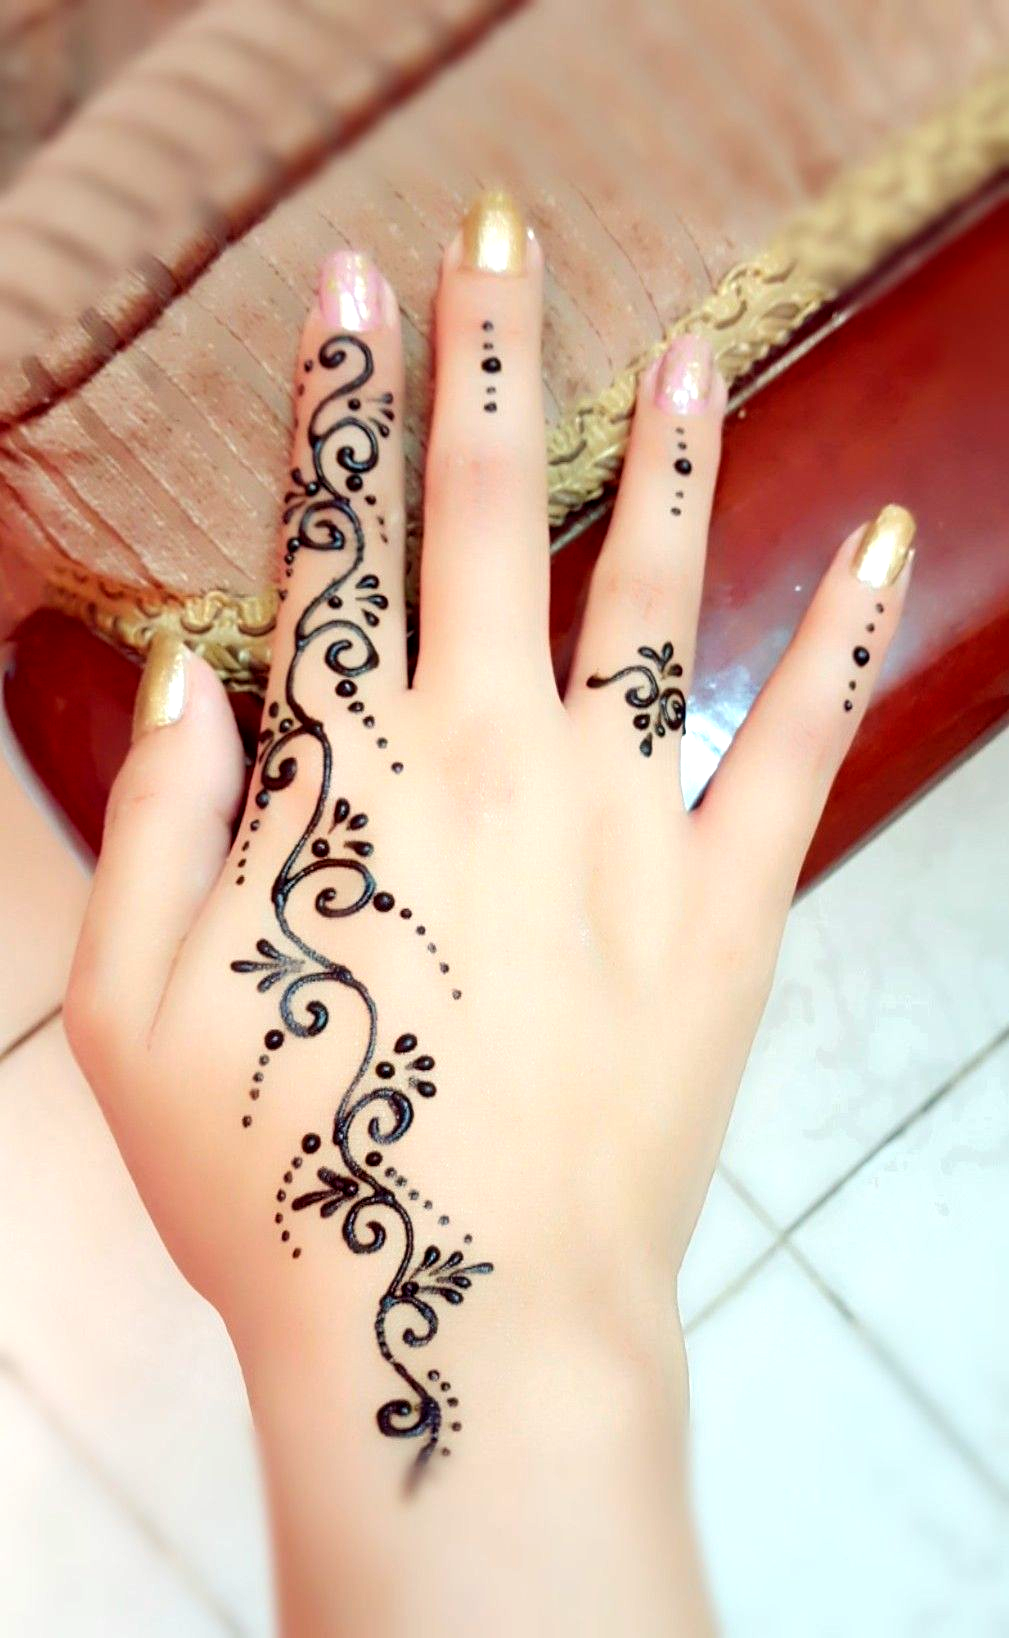 Pin By Nez See On Tattoo In 2020 Henna Tattoo Designs Simple Henna Tattoo Hand Henna Tattoo Designs